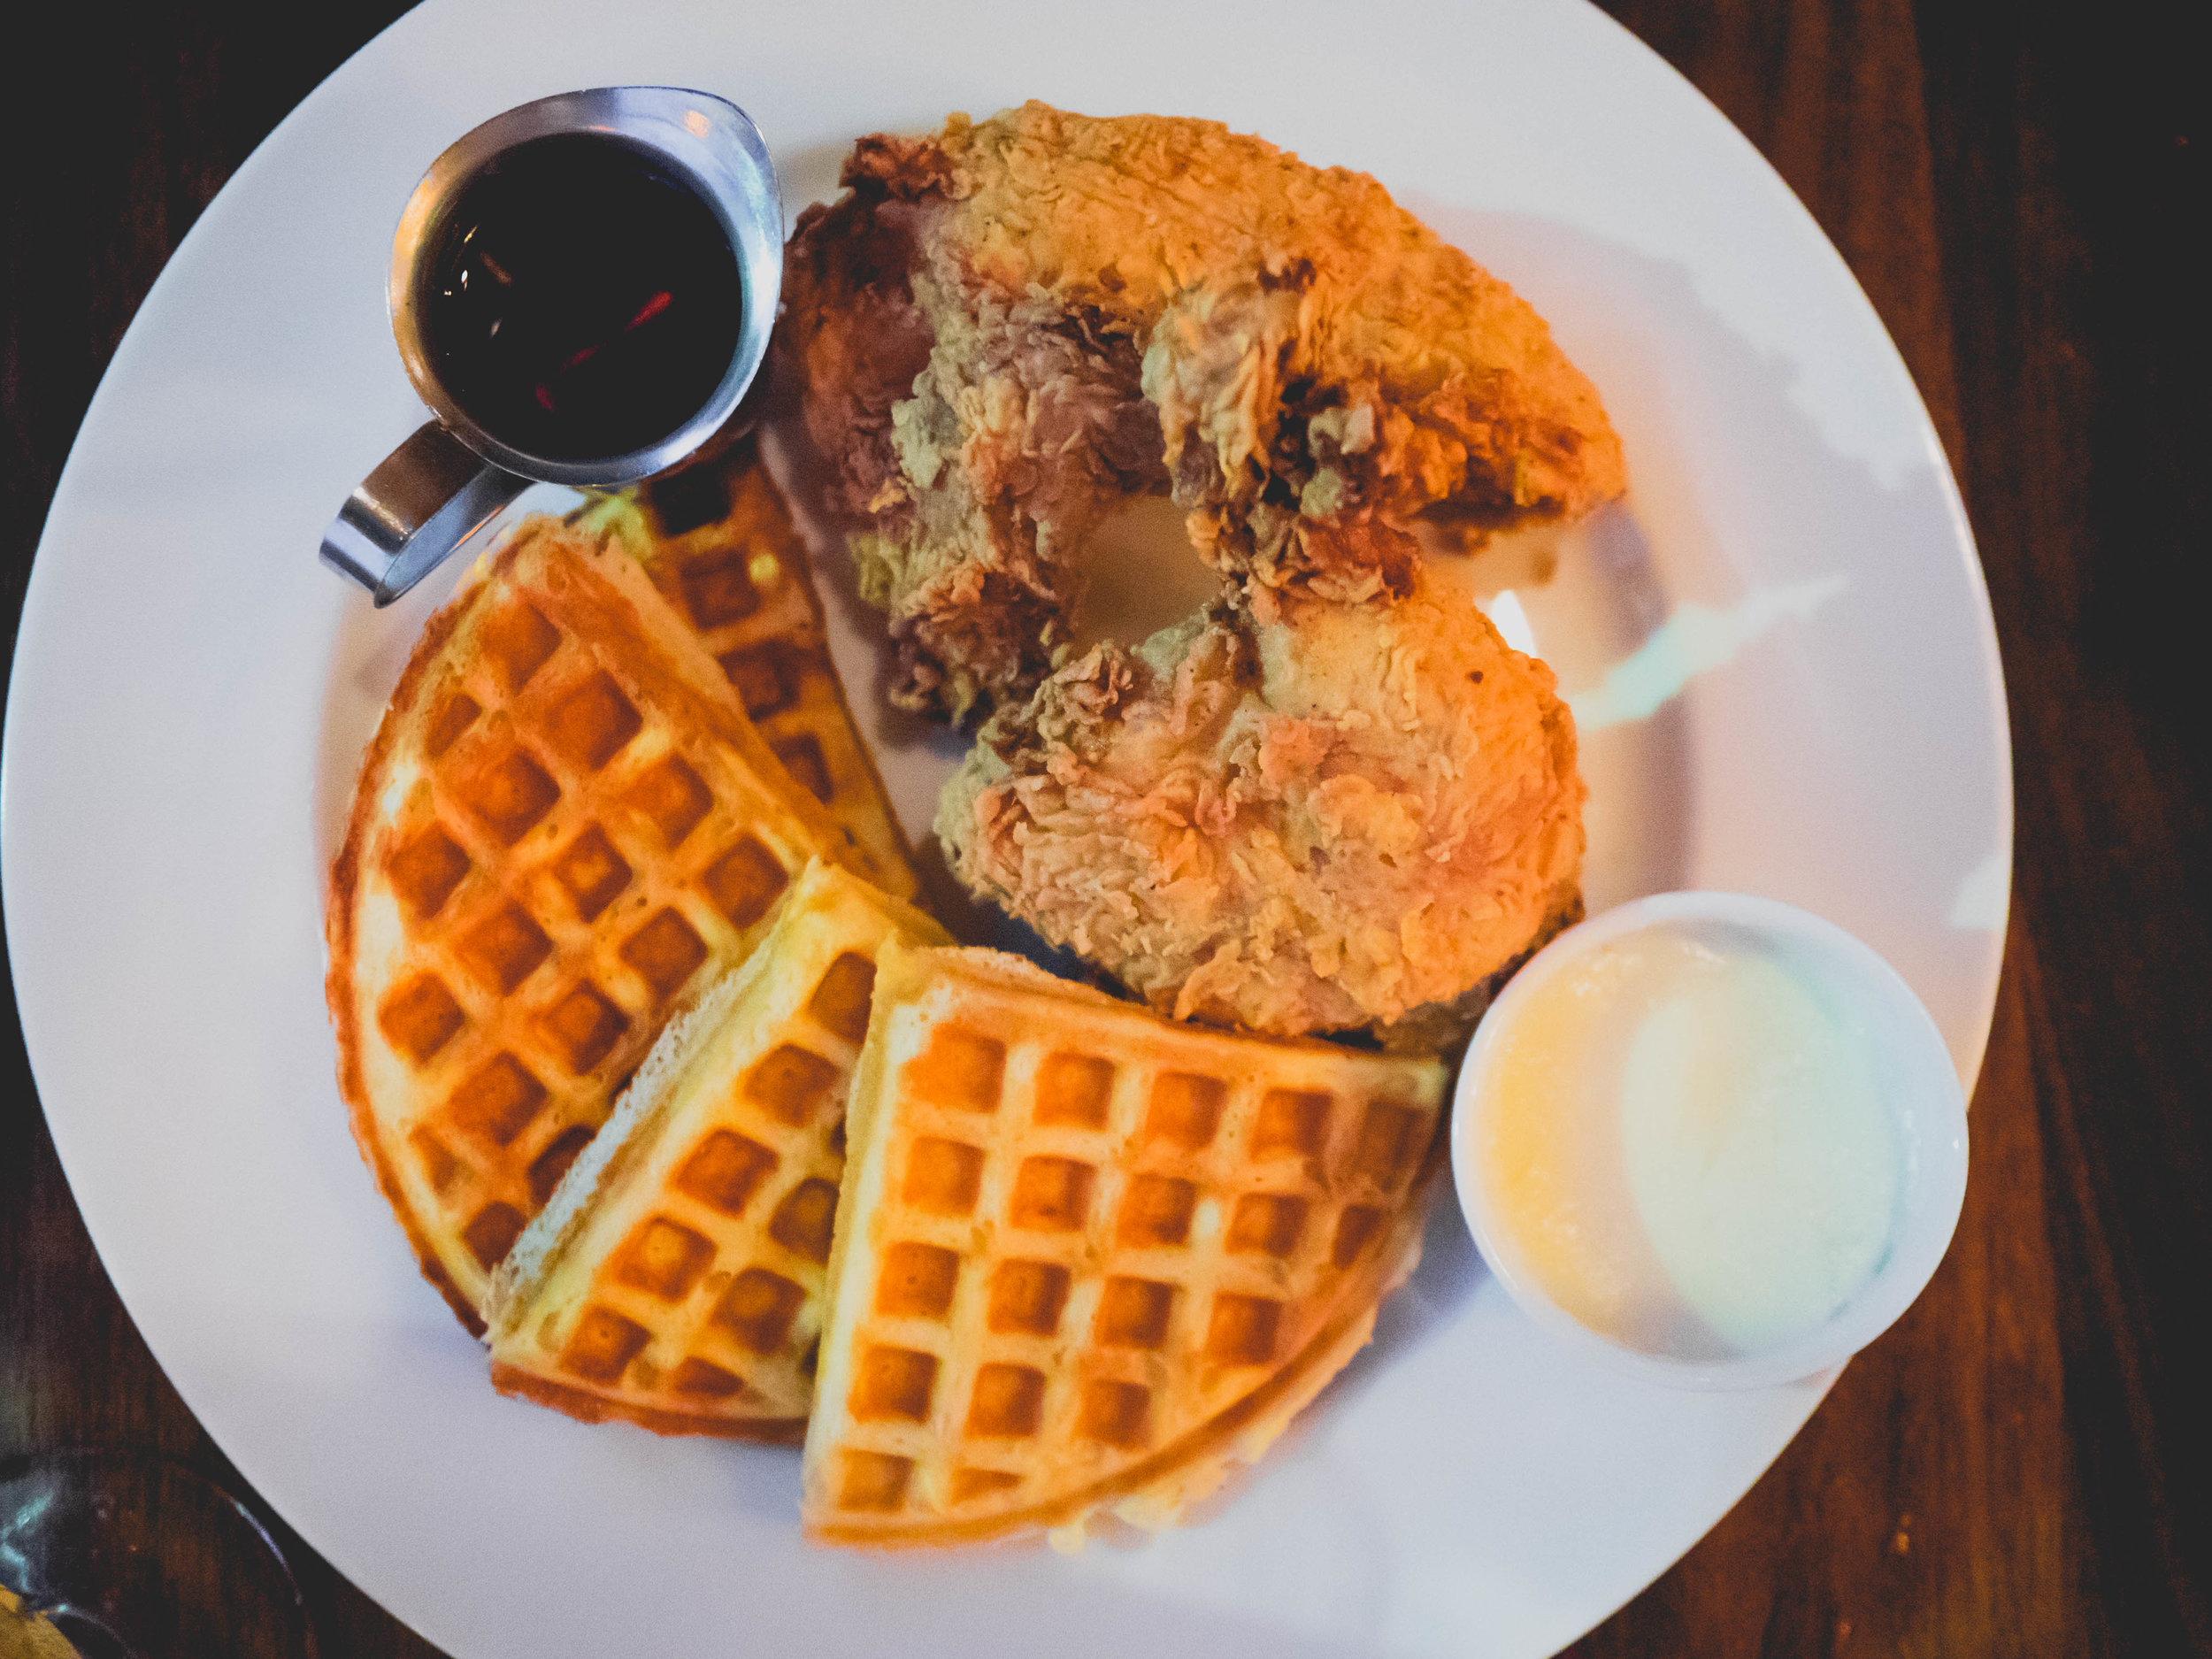 buttermilk fried chicken and waffles , butter, maple syrup.